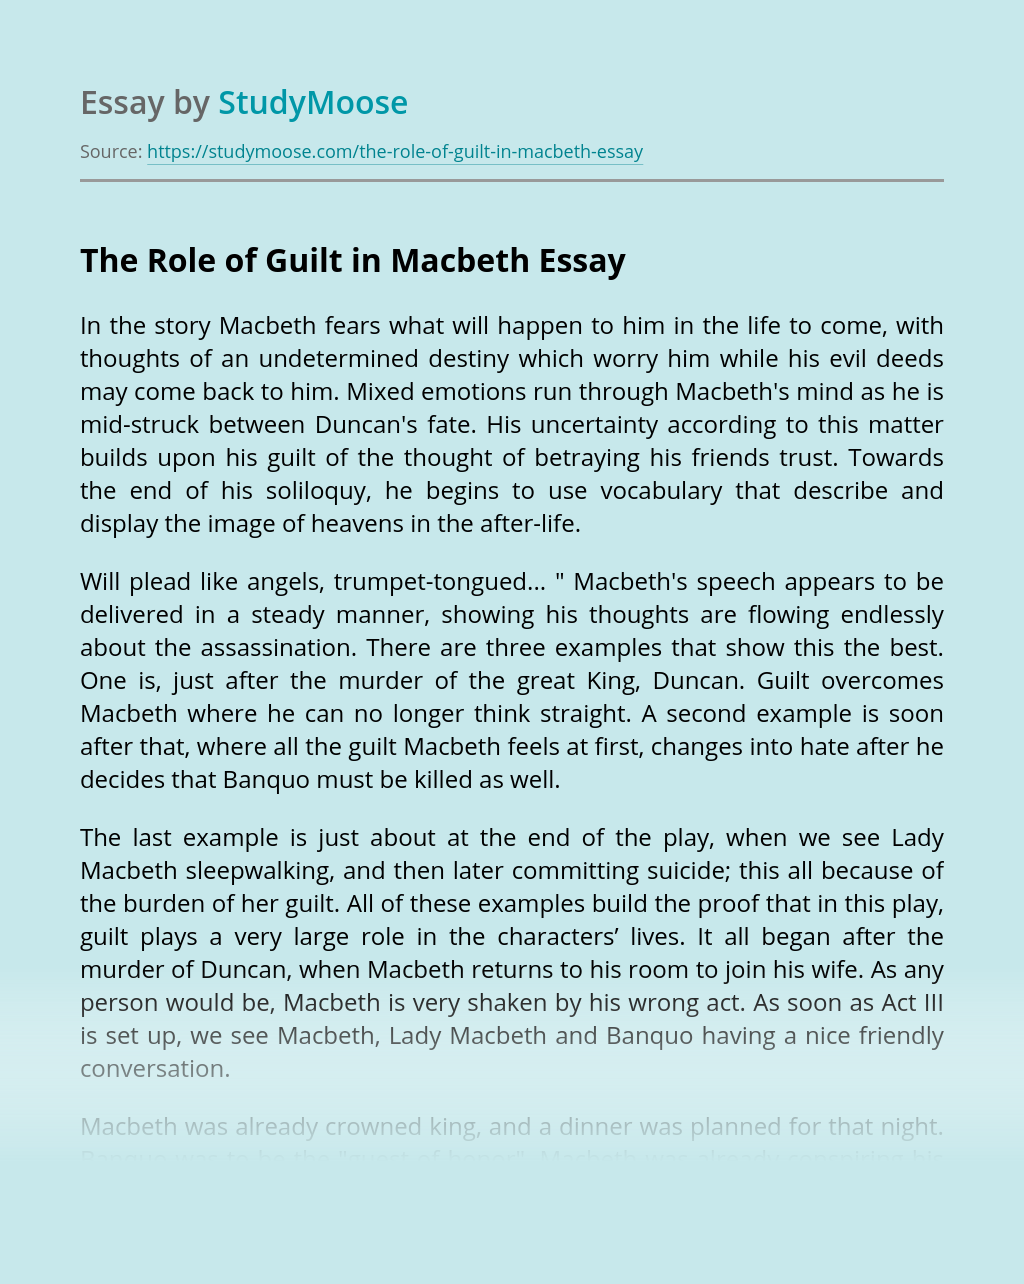 The Role of Guilt in Macbeth